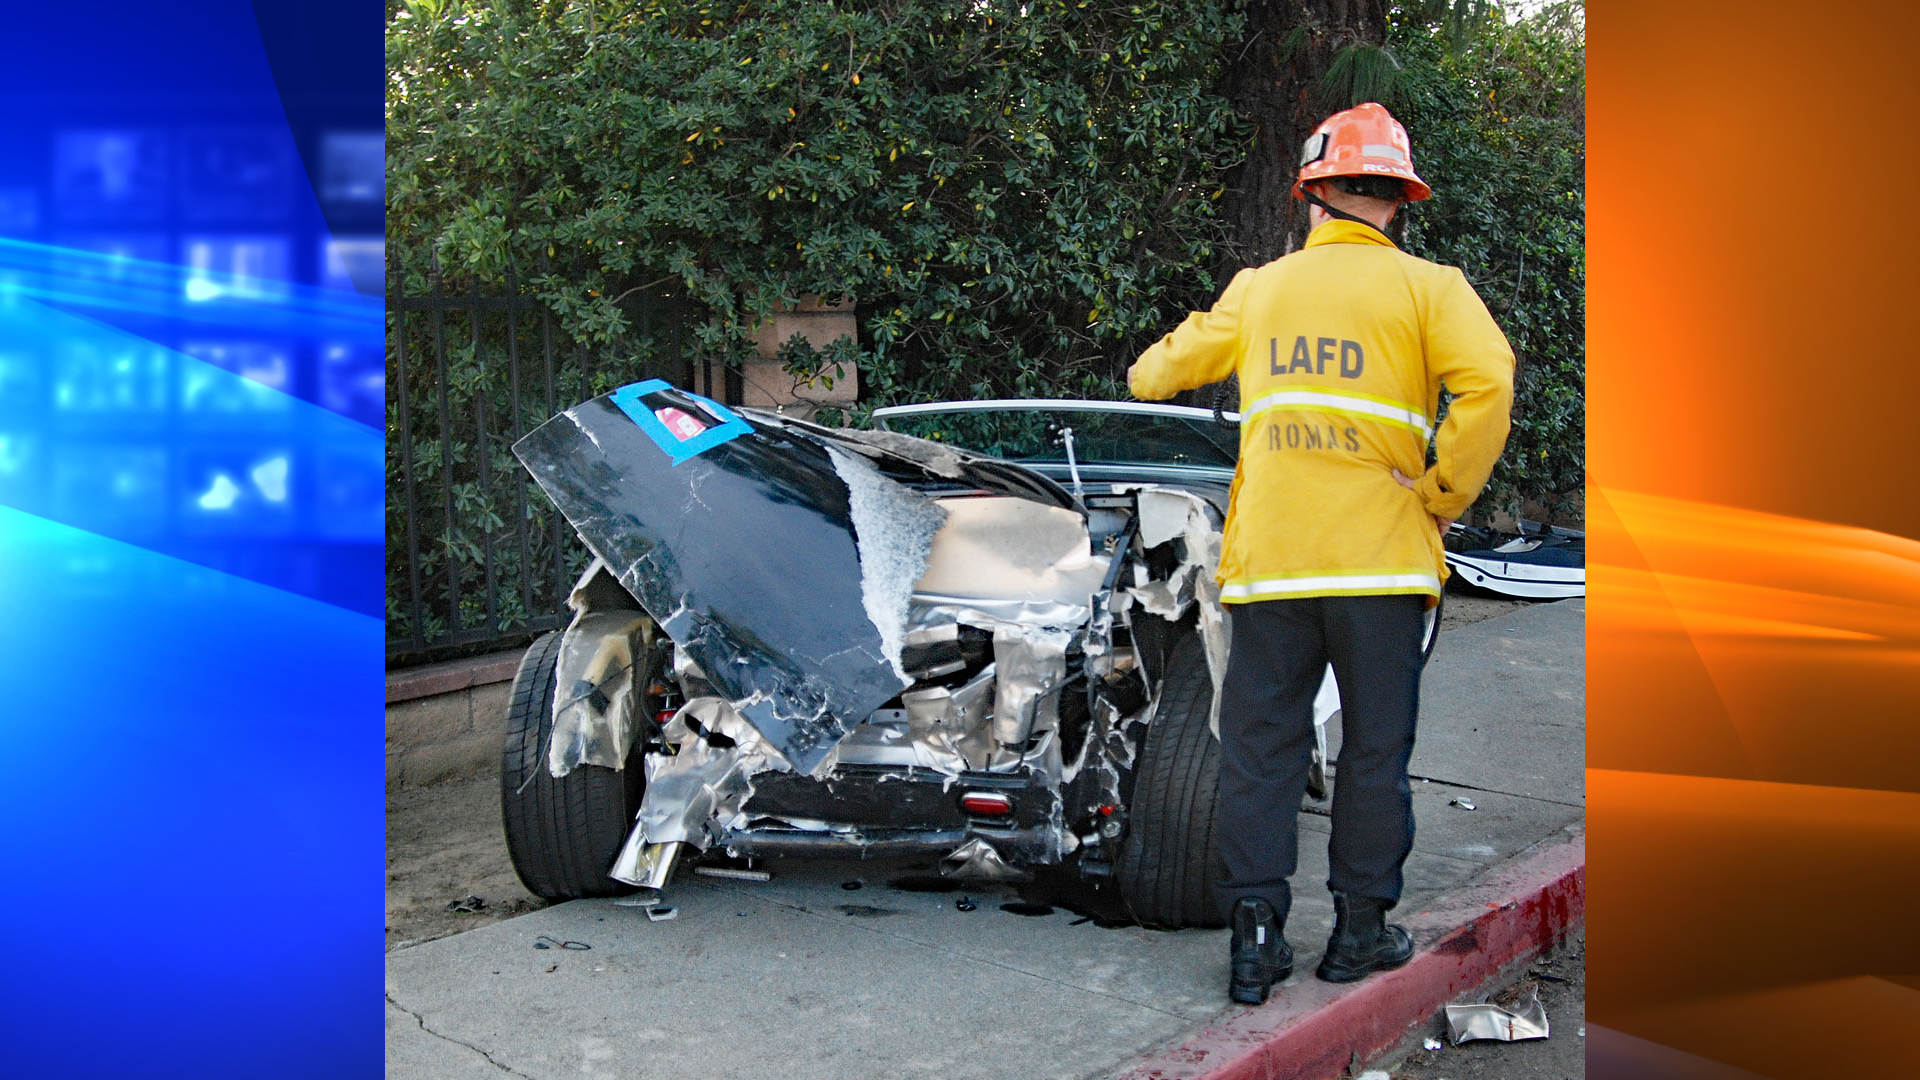 A custom-built sports car is seen in Northridge following a deadly crash on Jan. 26, 2019. (Credit: Los Angeles Fire Department)